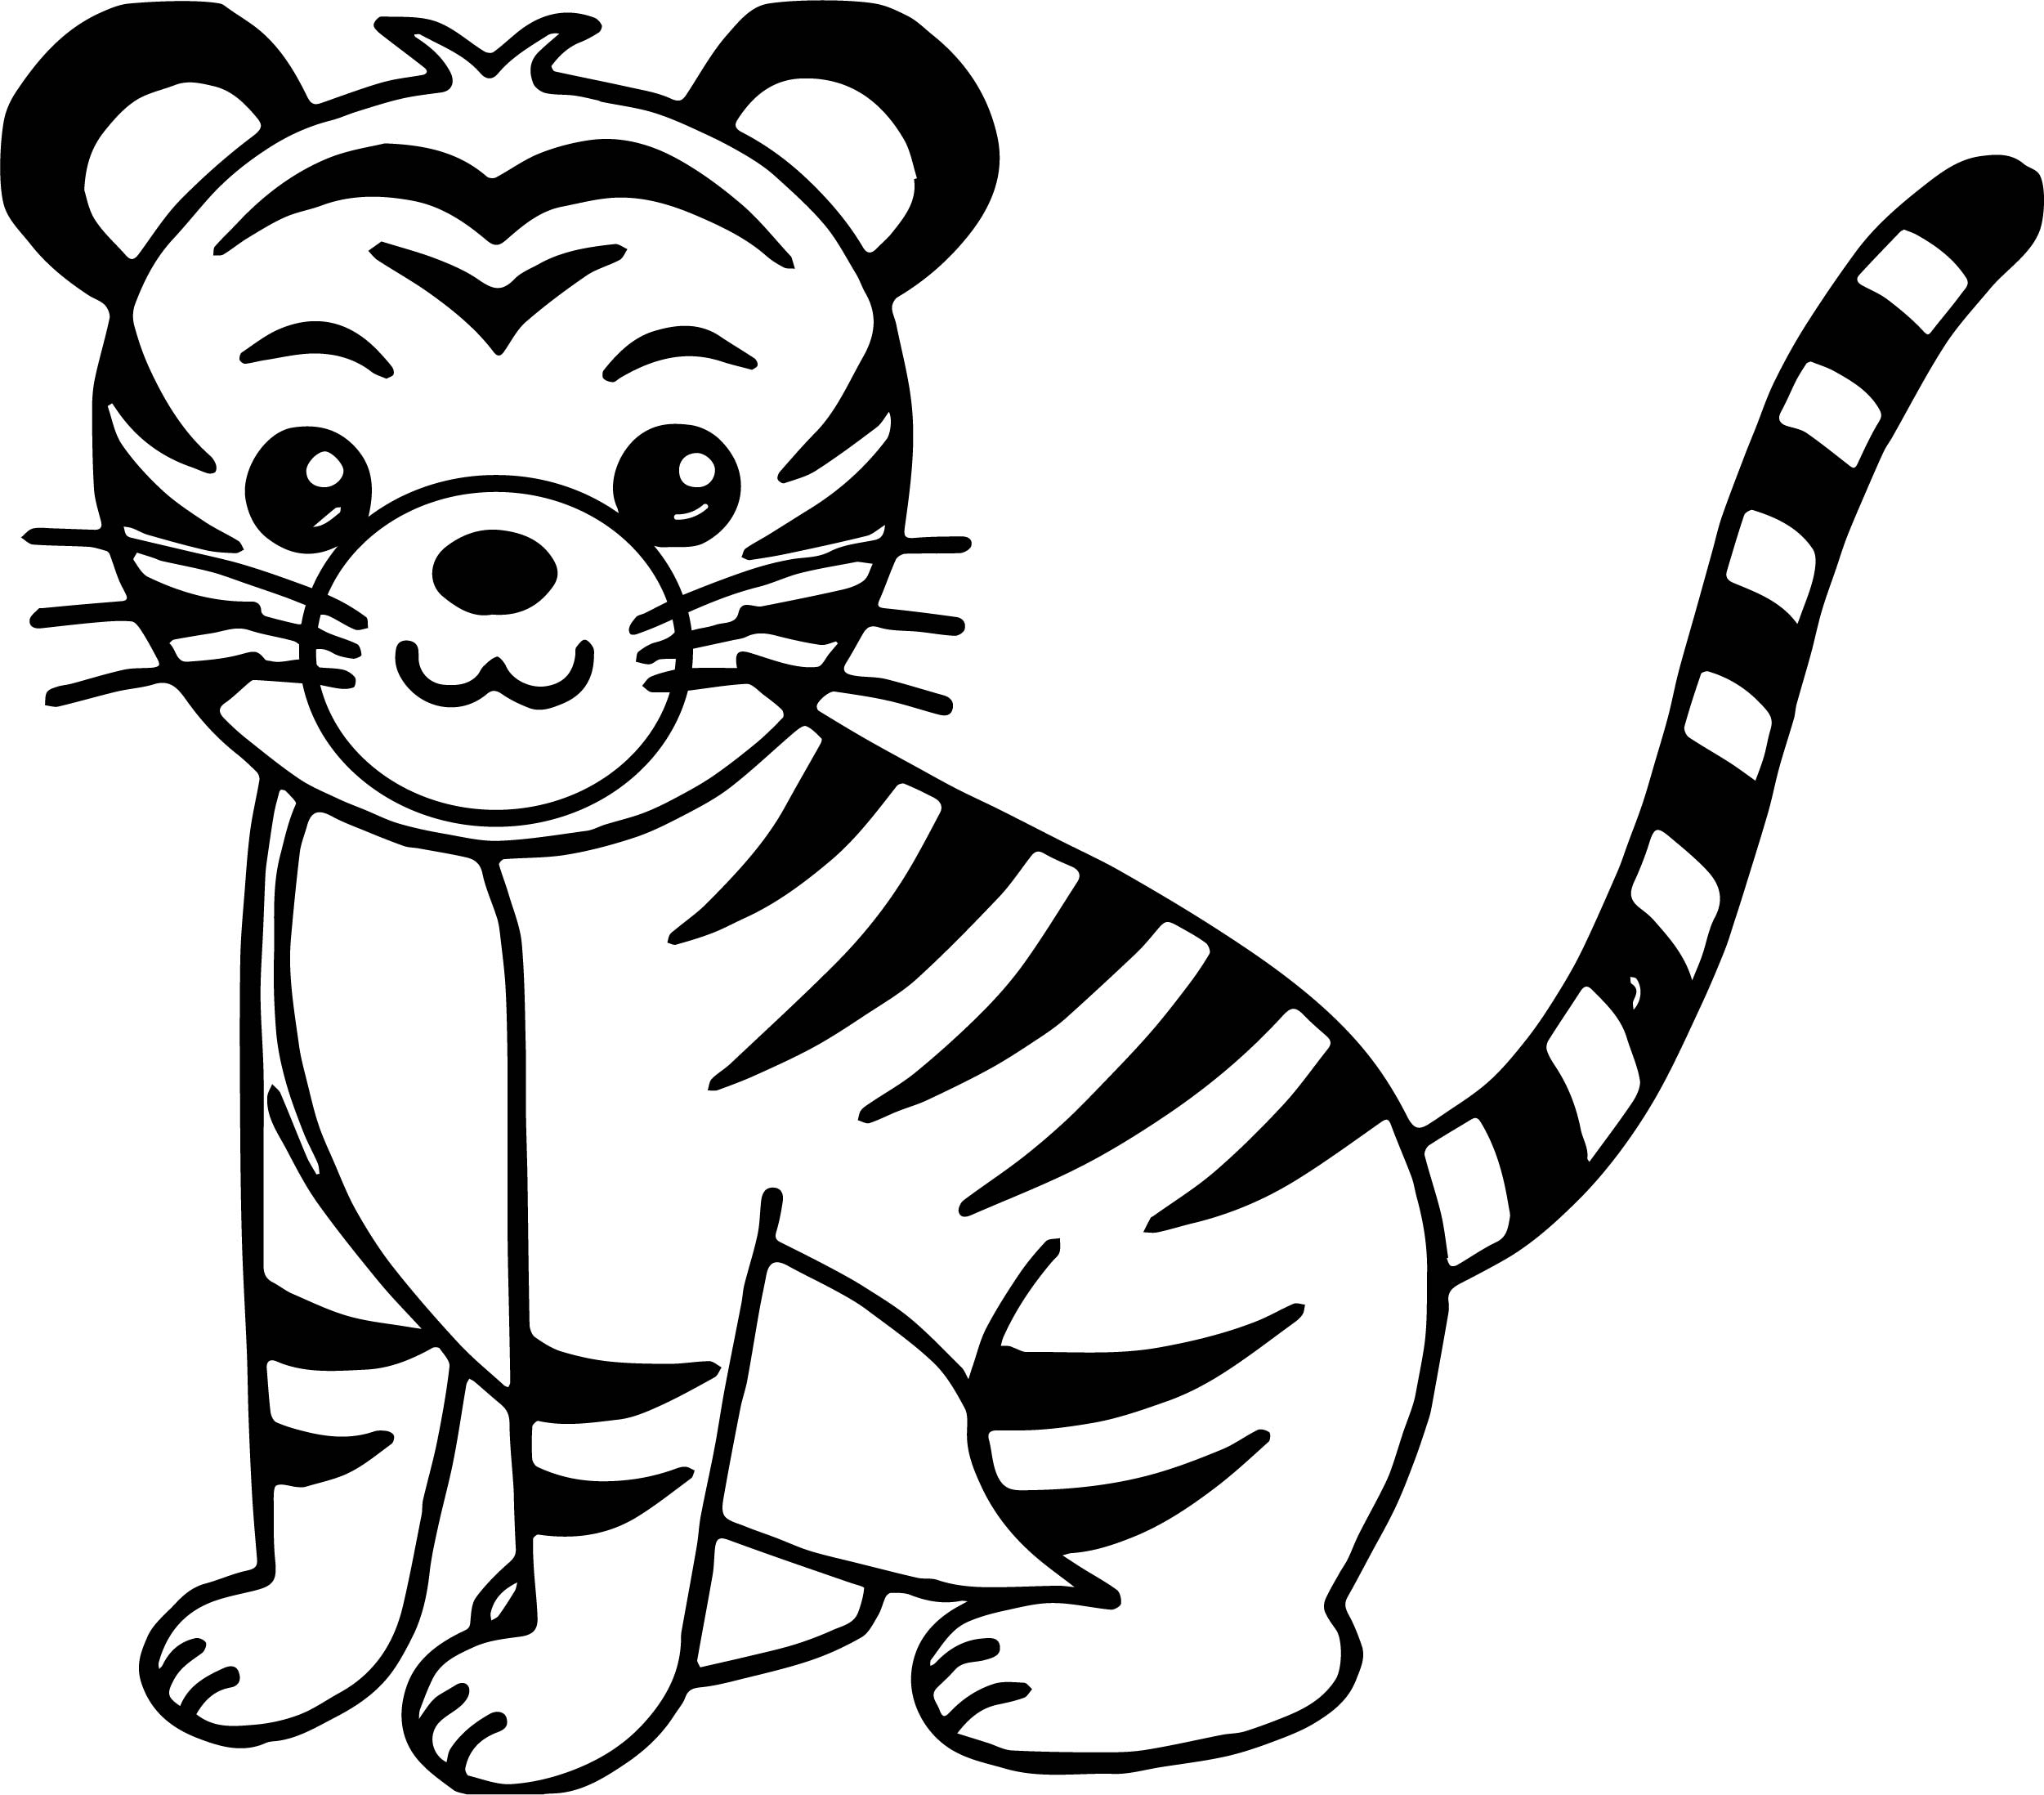 coloring pictures of tigers tigers coloring pages download and print tigers coloring coloring of pictures tigers